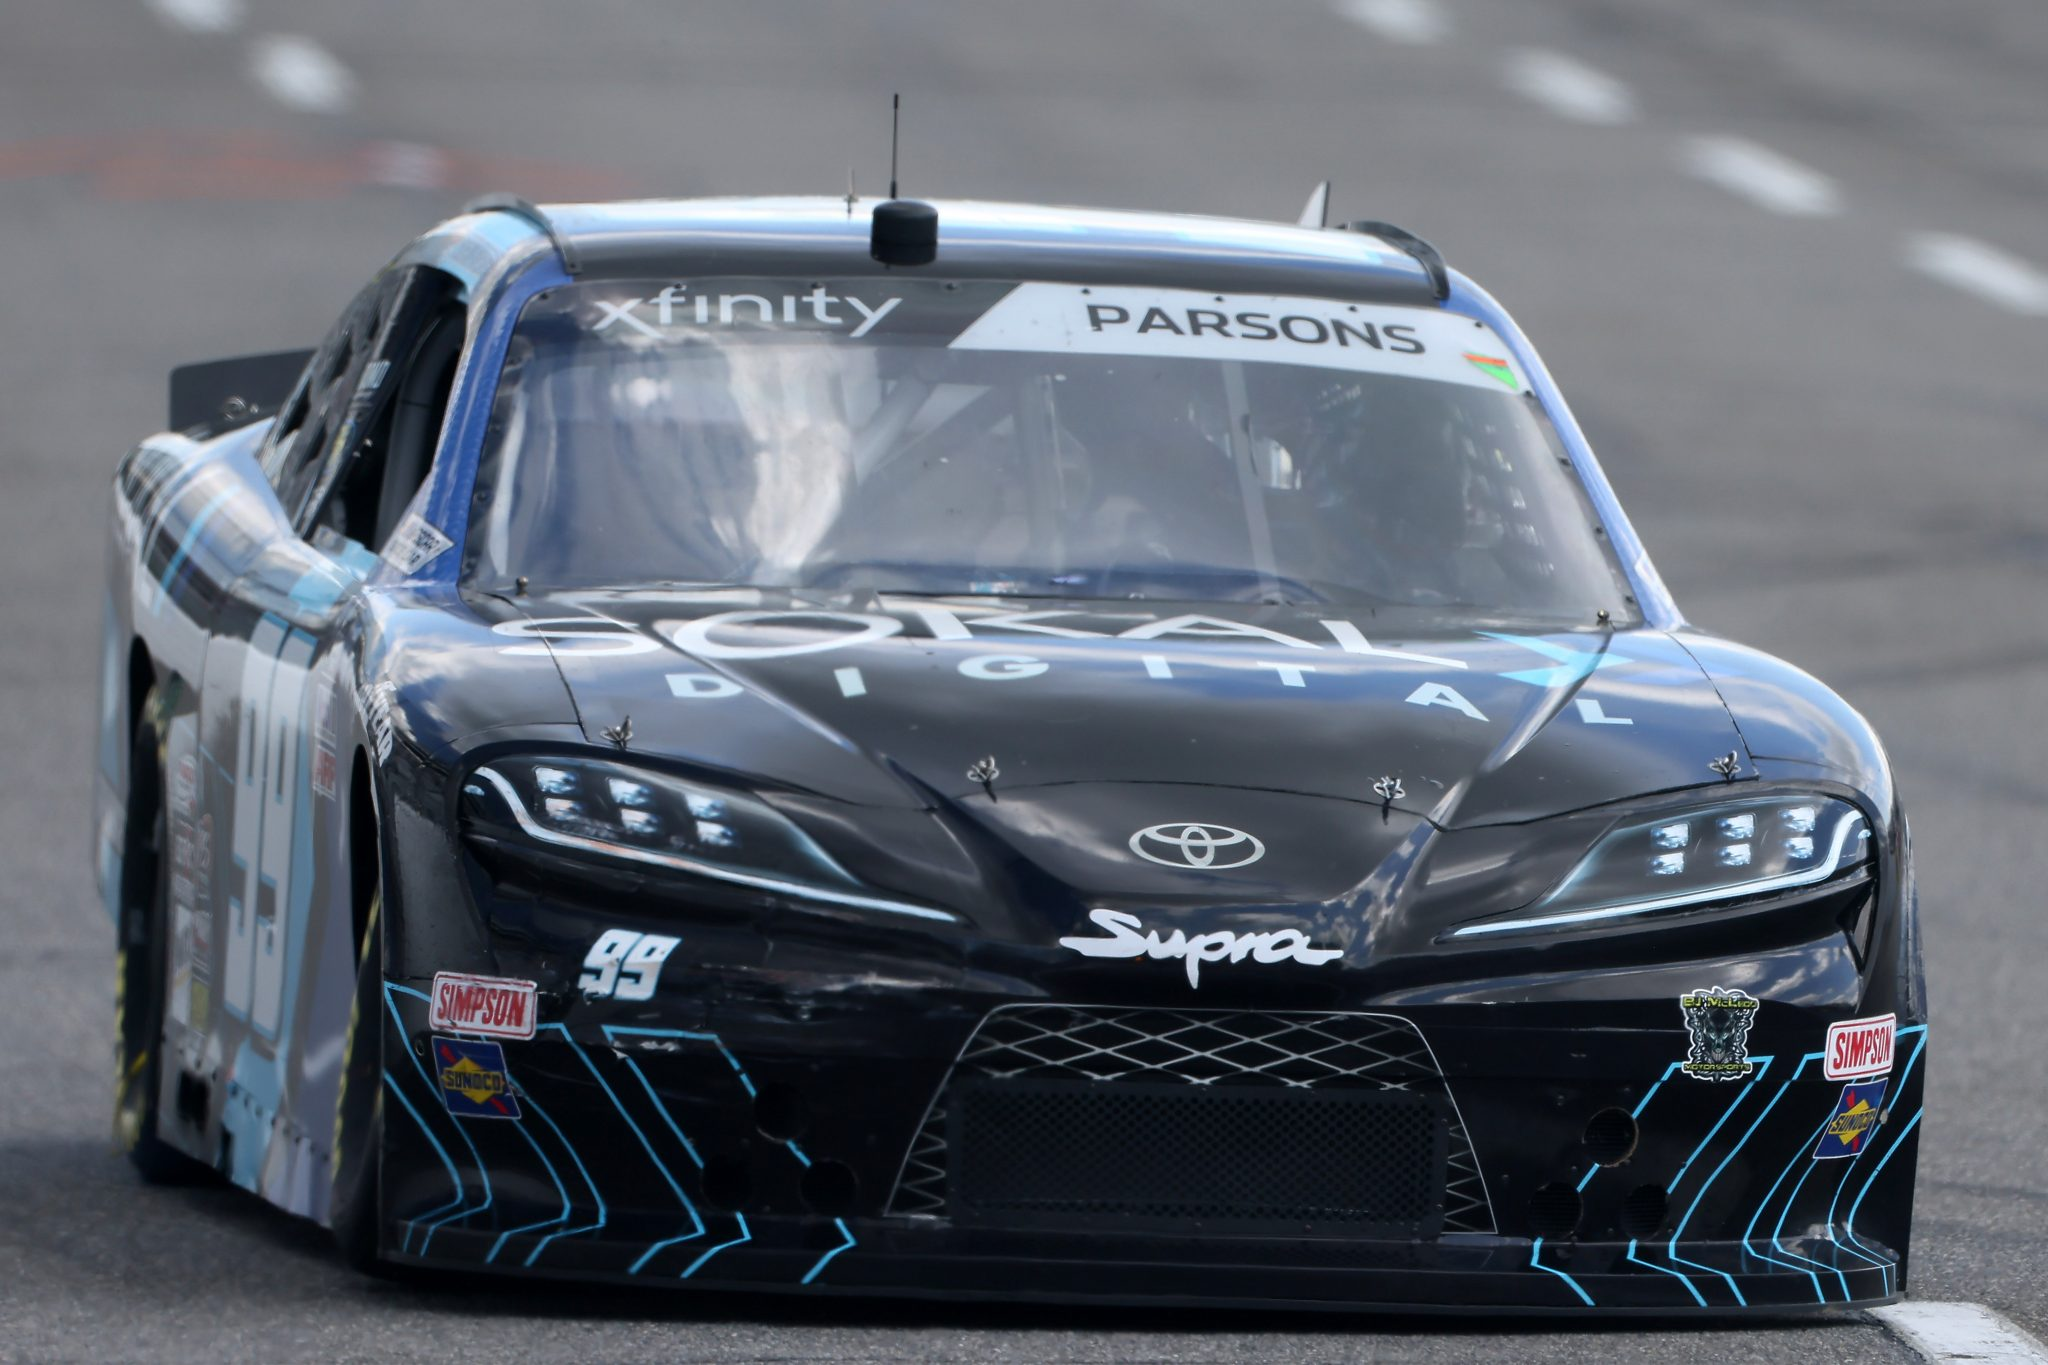 MARTINSVILLE, VIRGINIA - APRIL 11: Stefan Parsons, driver of the #99 SOKAL Digital Toyota, drives during the NASCAR Xfinity Series Cook Out 250 at Martinsville Speedway on April 11, 2021 in Martinsville, Virginia. (Photo by James Gilbert/Getty Images) | Getty Images